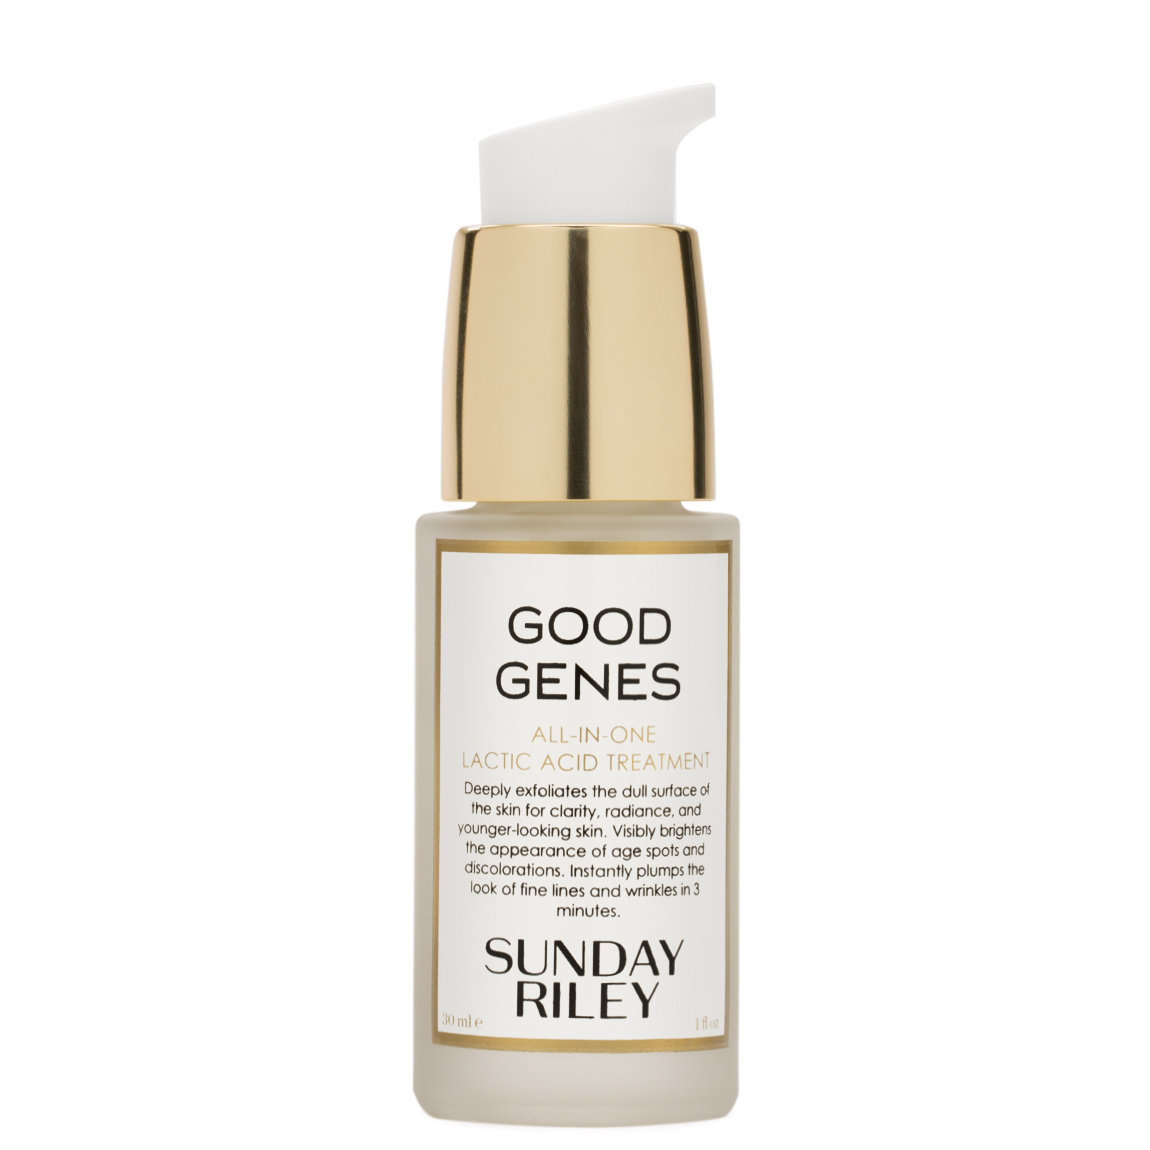 Sunday Riley Good Genes All-In-One Lactic Acid Treatment 30 ml product swatch.